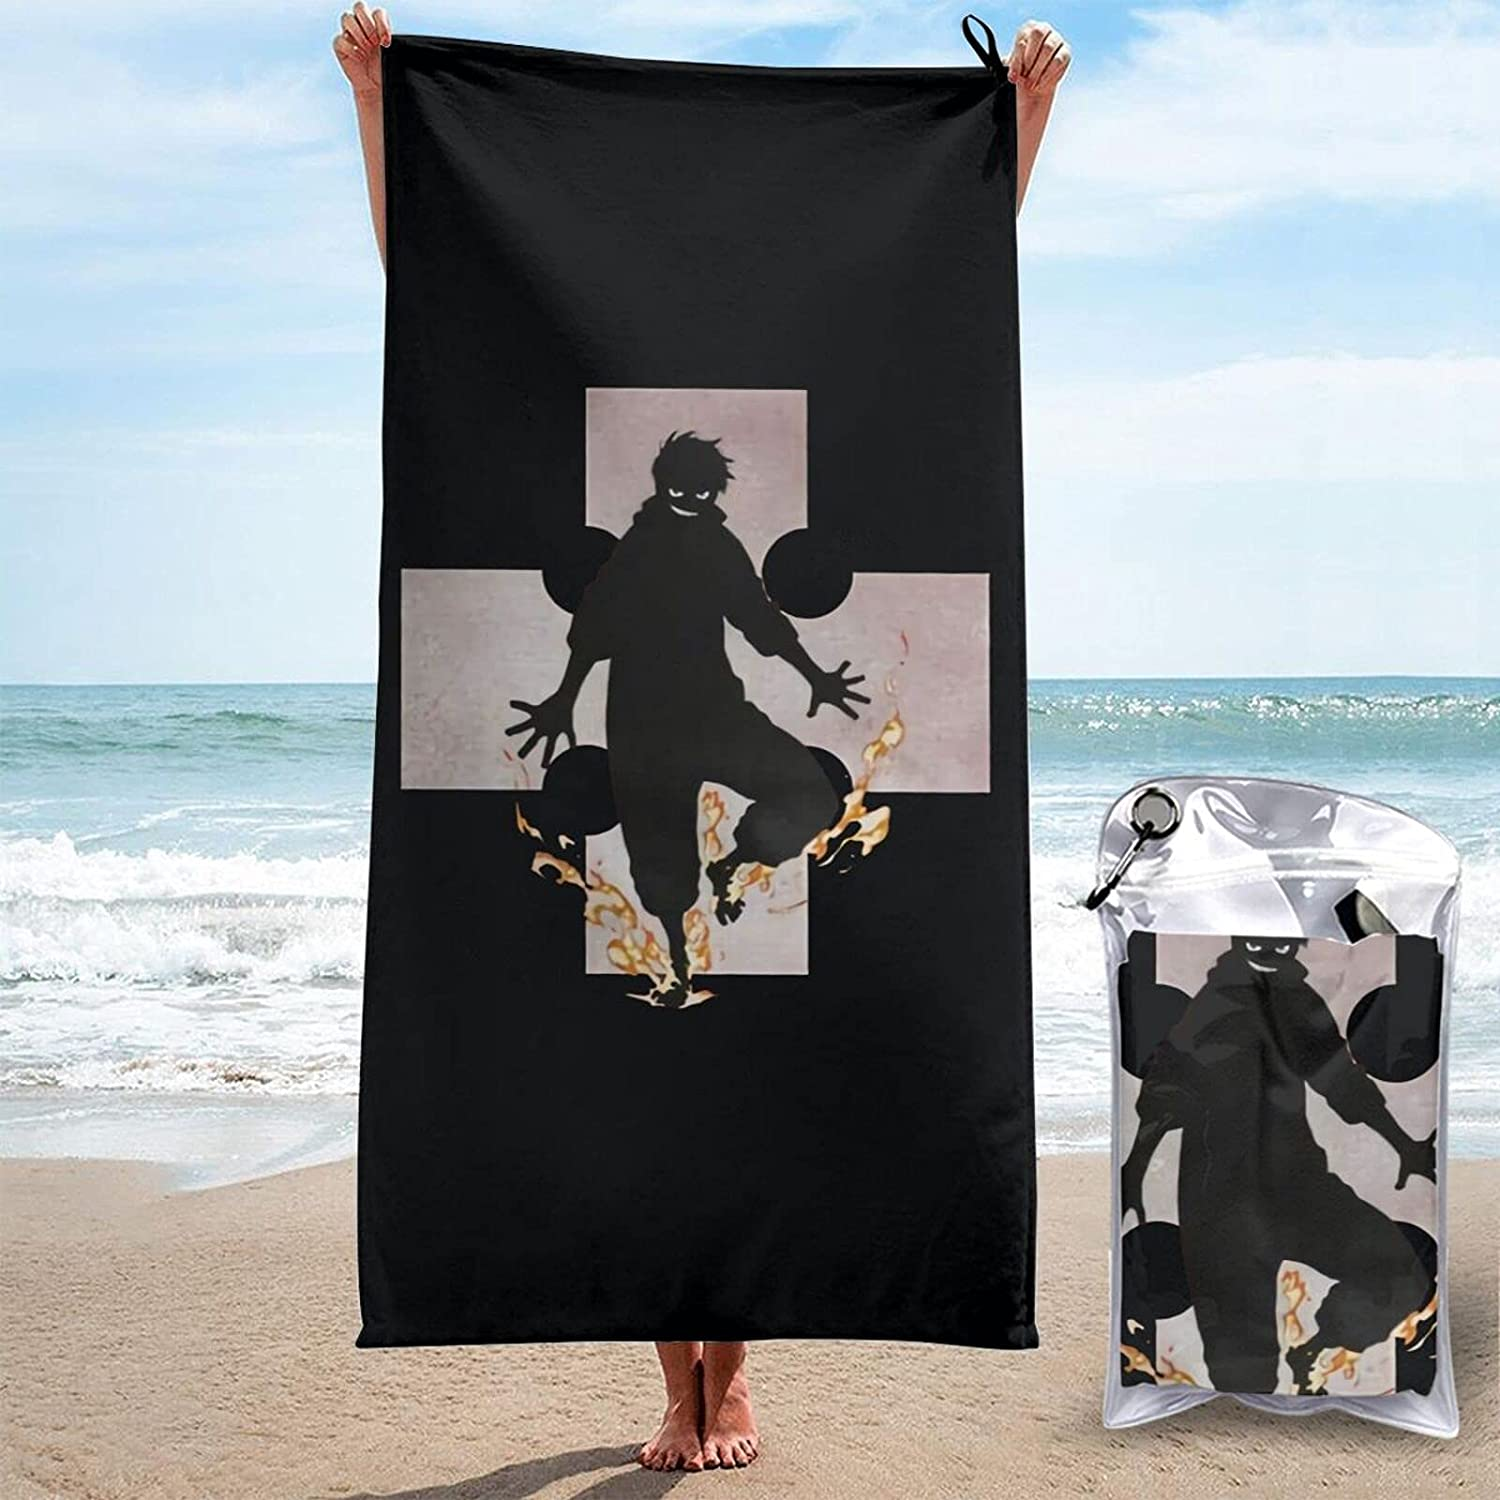 Fire Force 3D Printed Large Towels Quick-Dr mart are Beach Sand-Free Brand Cheap Sale Venue